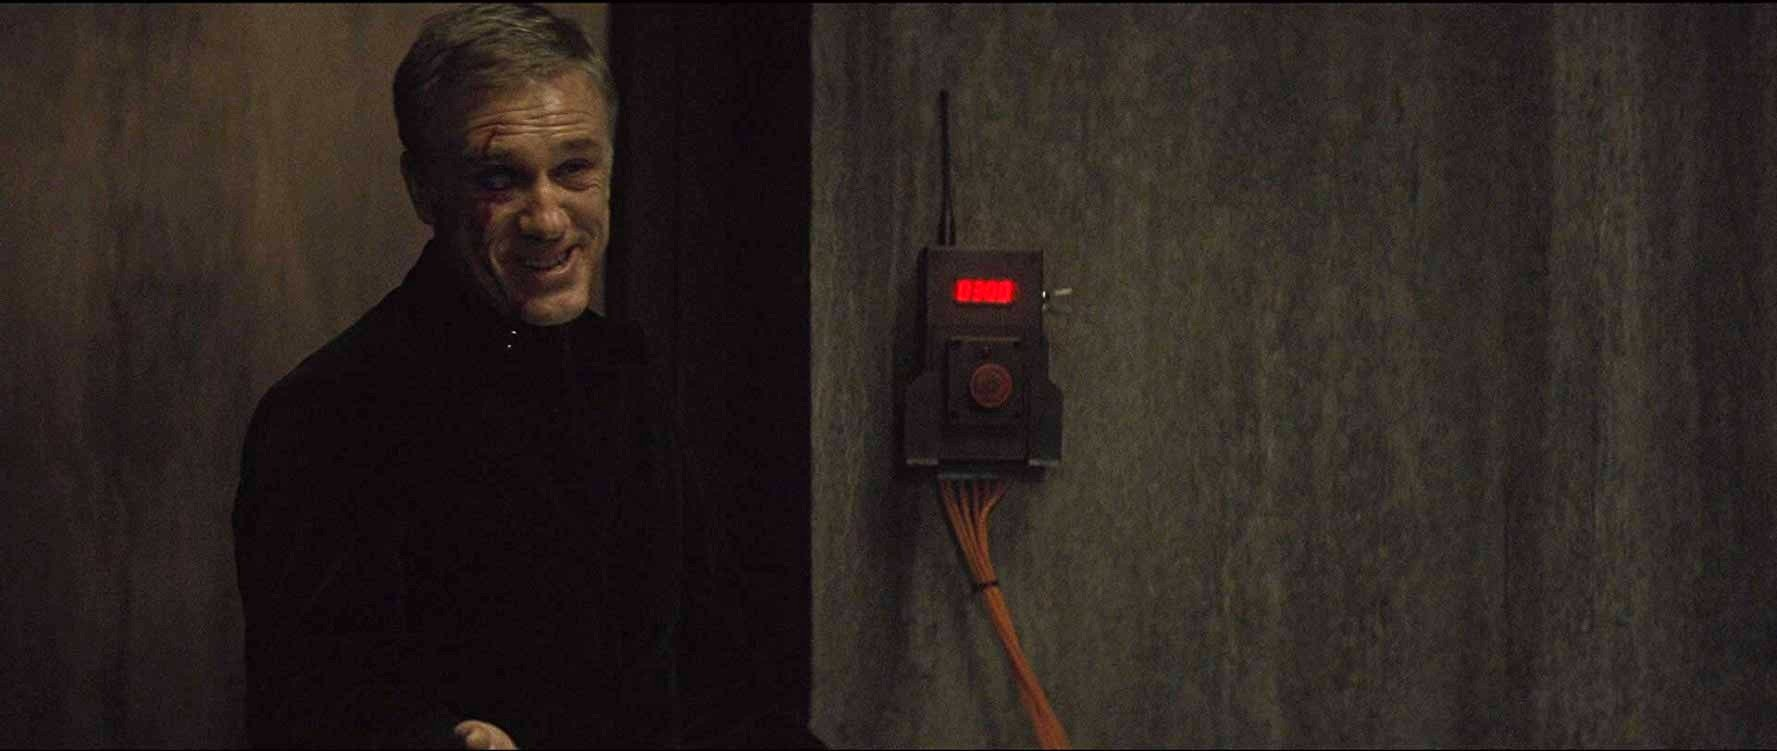 Blofeld (Christoph Waltz) is up to no good in 'Spectre'